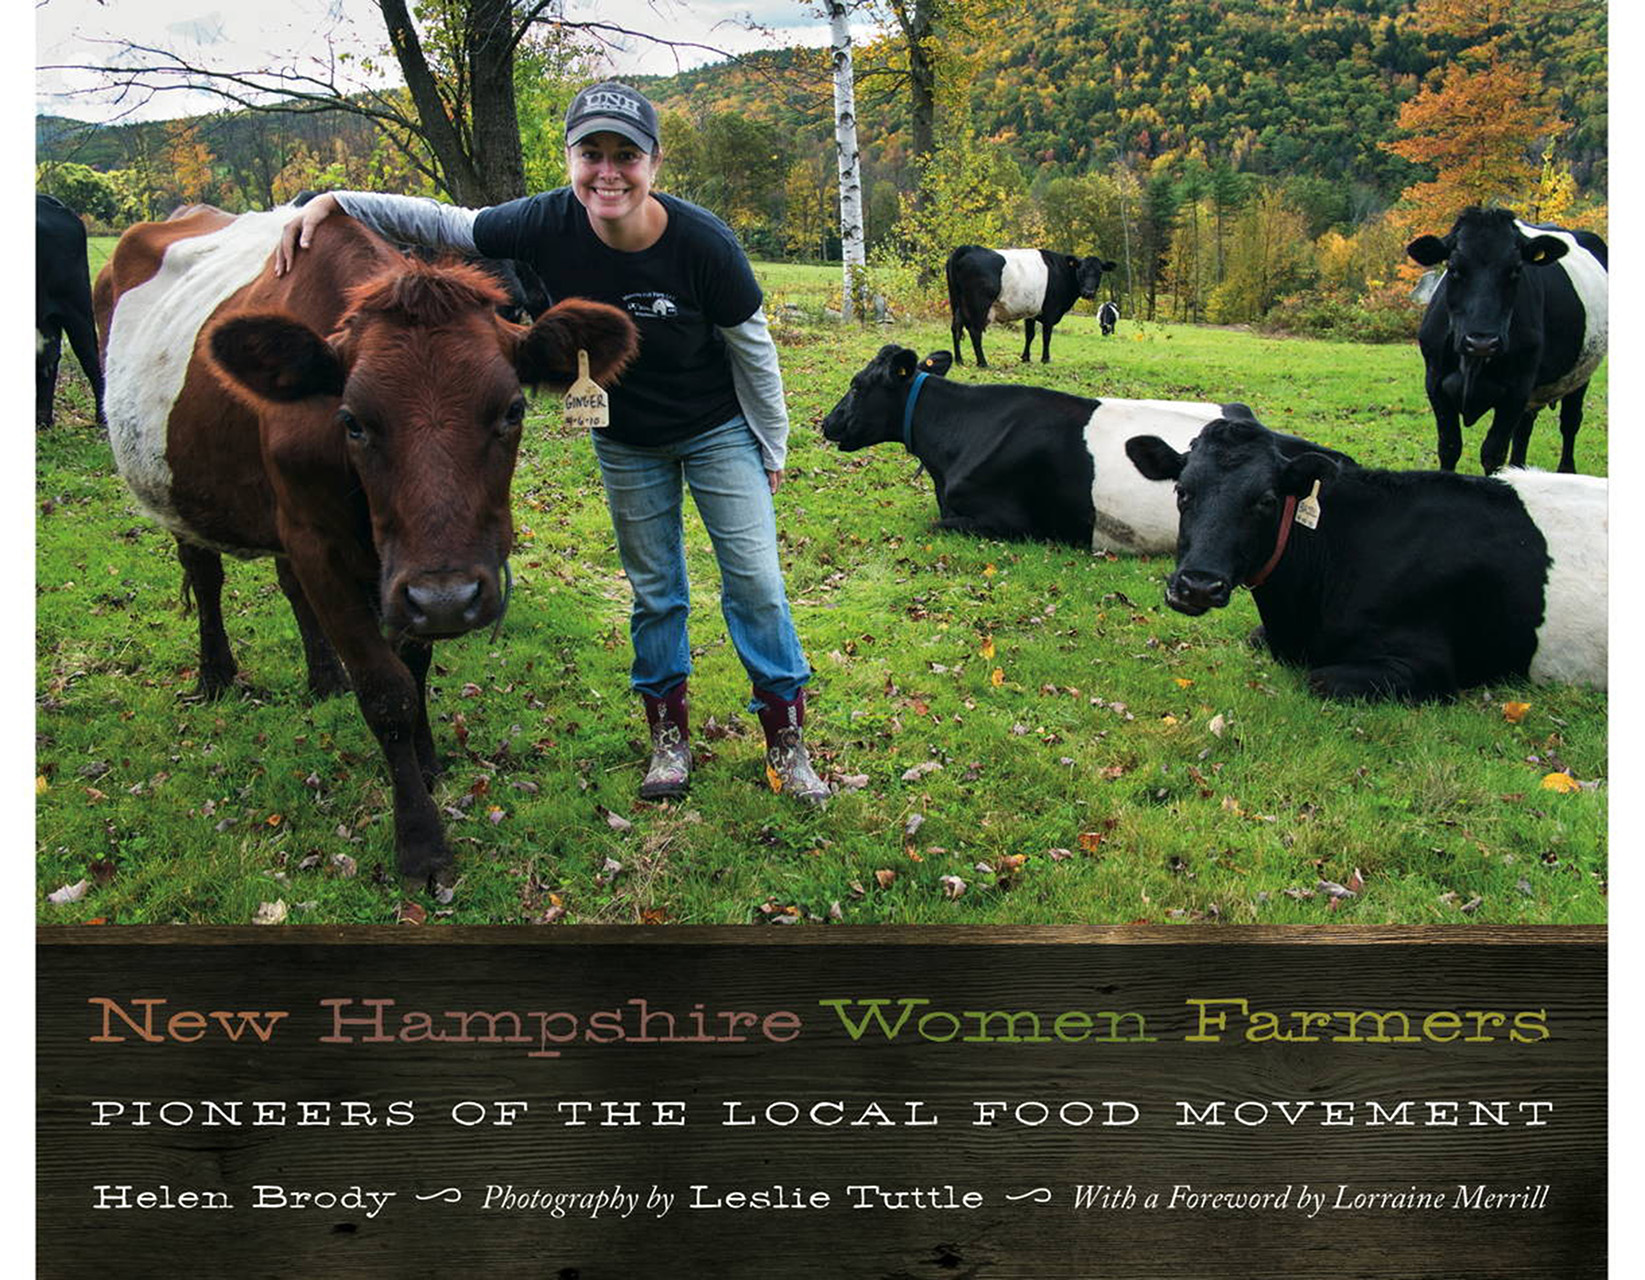 New Hampshire Women Farmers